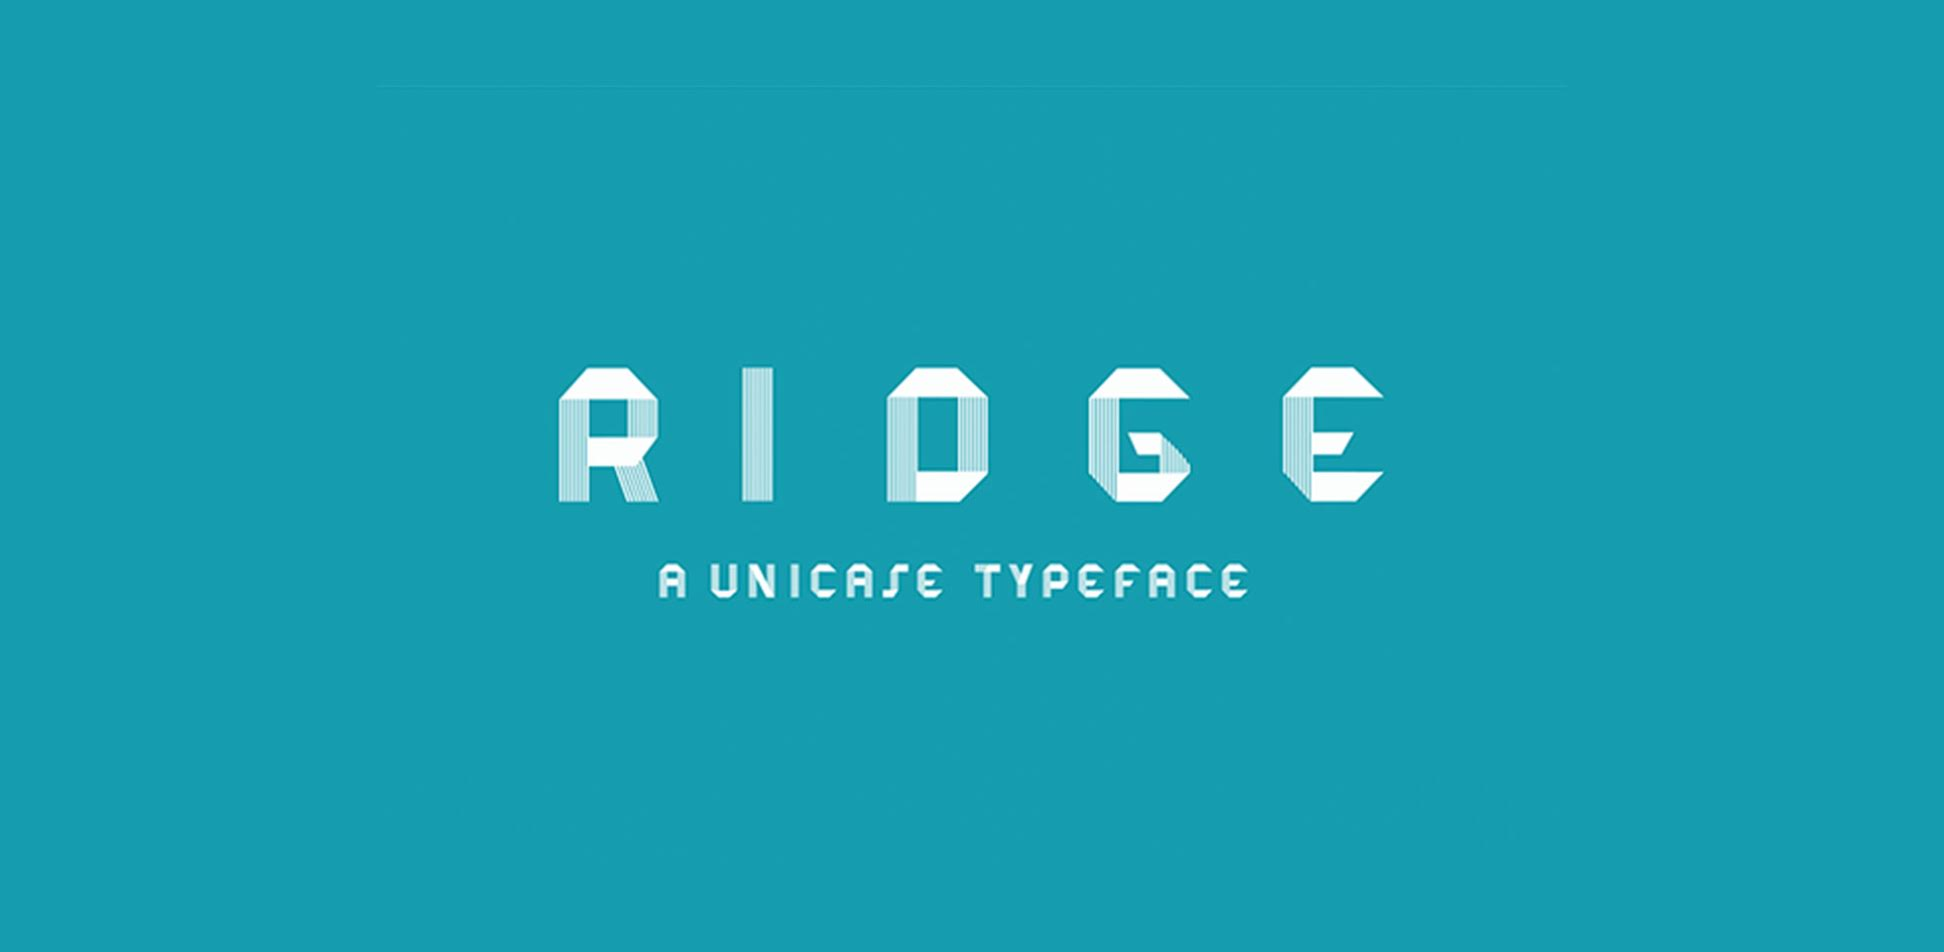 Free download: RIDGE Typeface